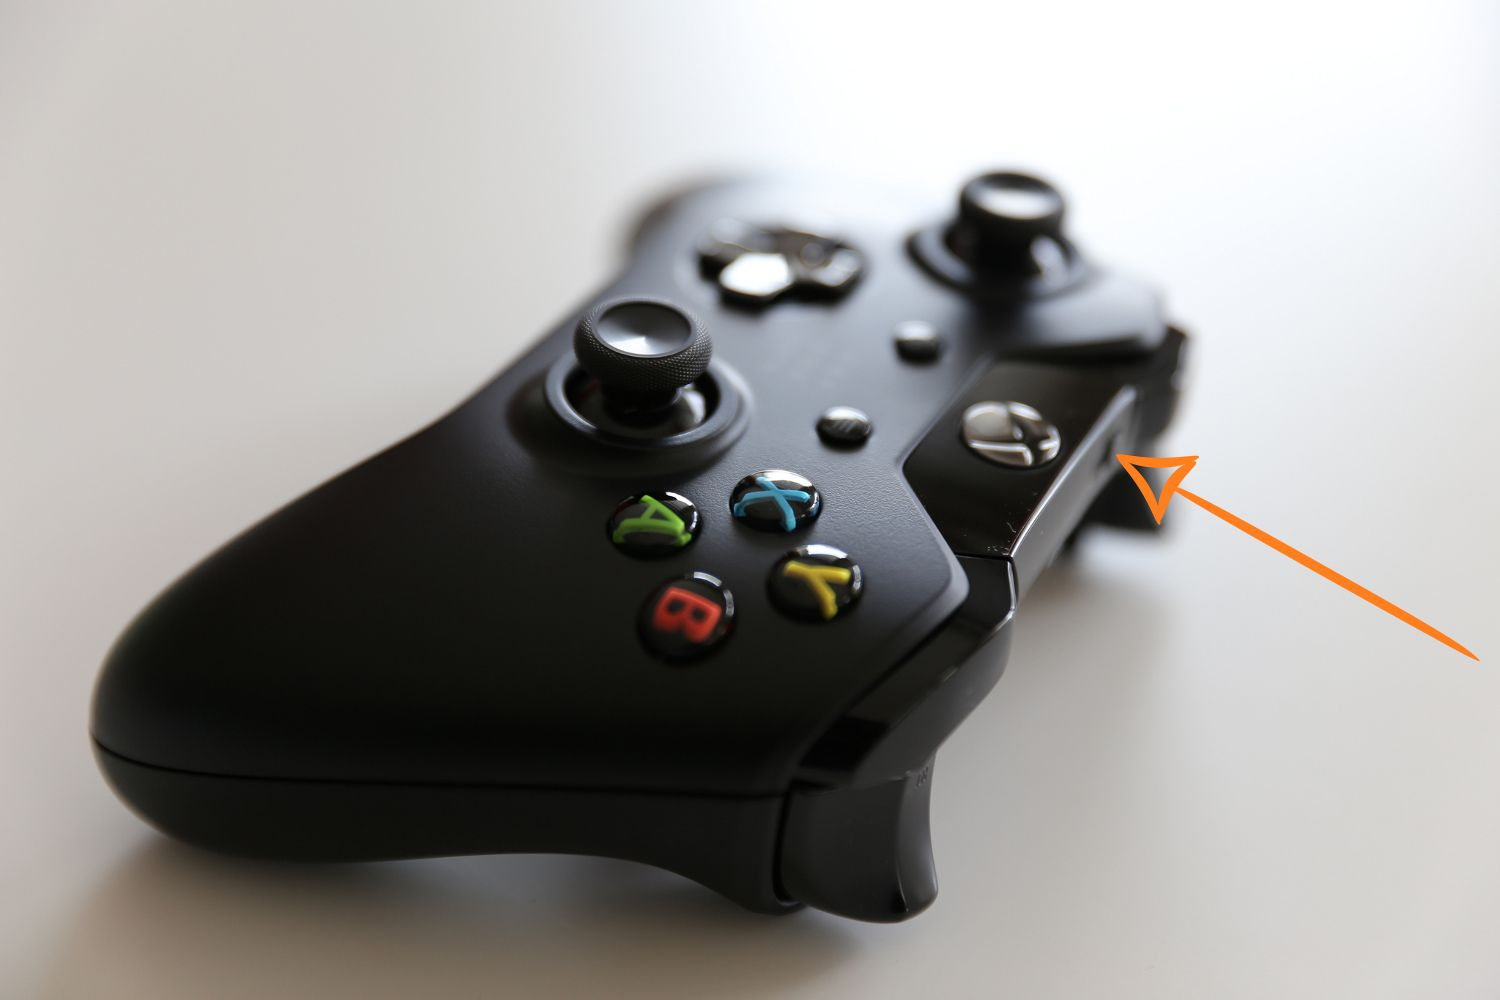 How To Sync Your Xbox Controller An One Or Pc Once Attached They Look Part Of The And Not Press Connect Button On